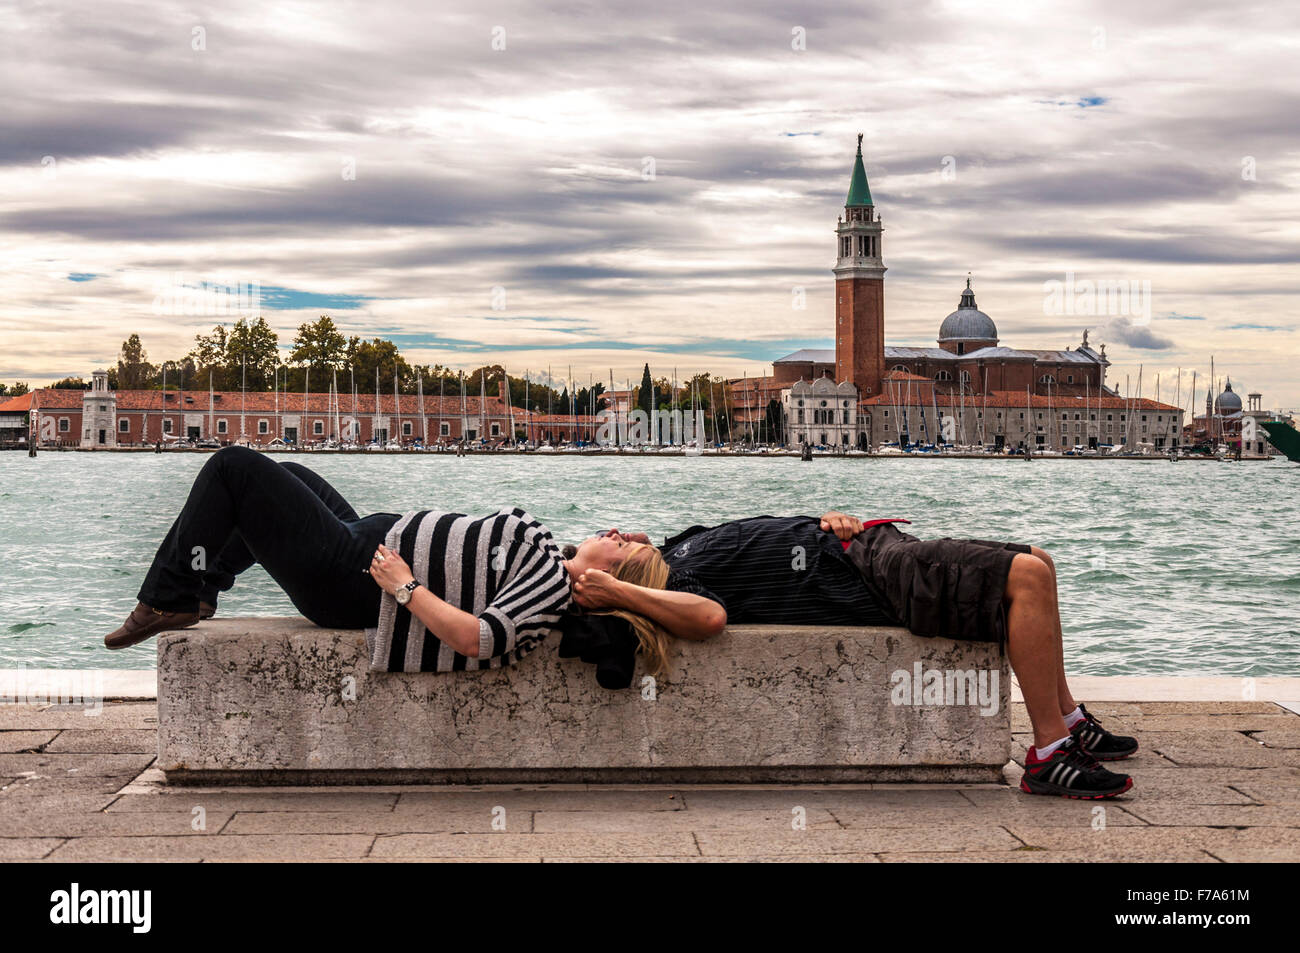 Tourist couple asleep or rest on a bench in Venice, Italy - Stock Image